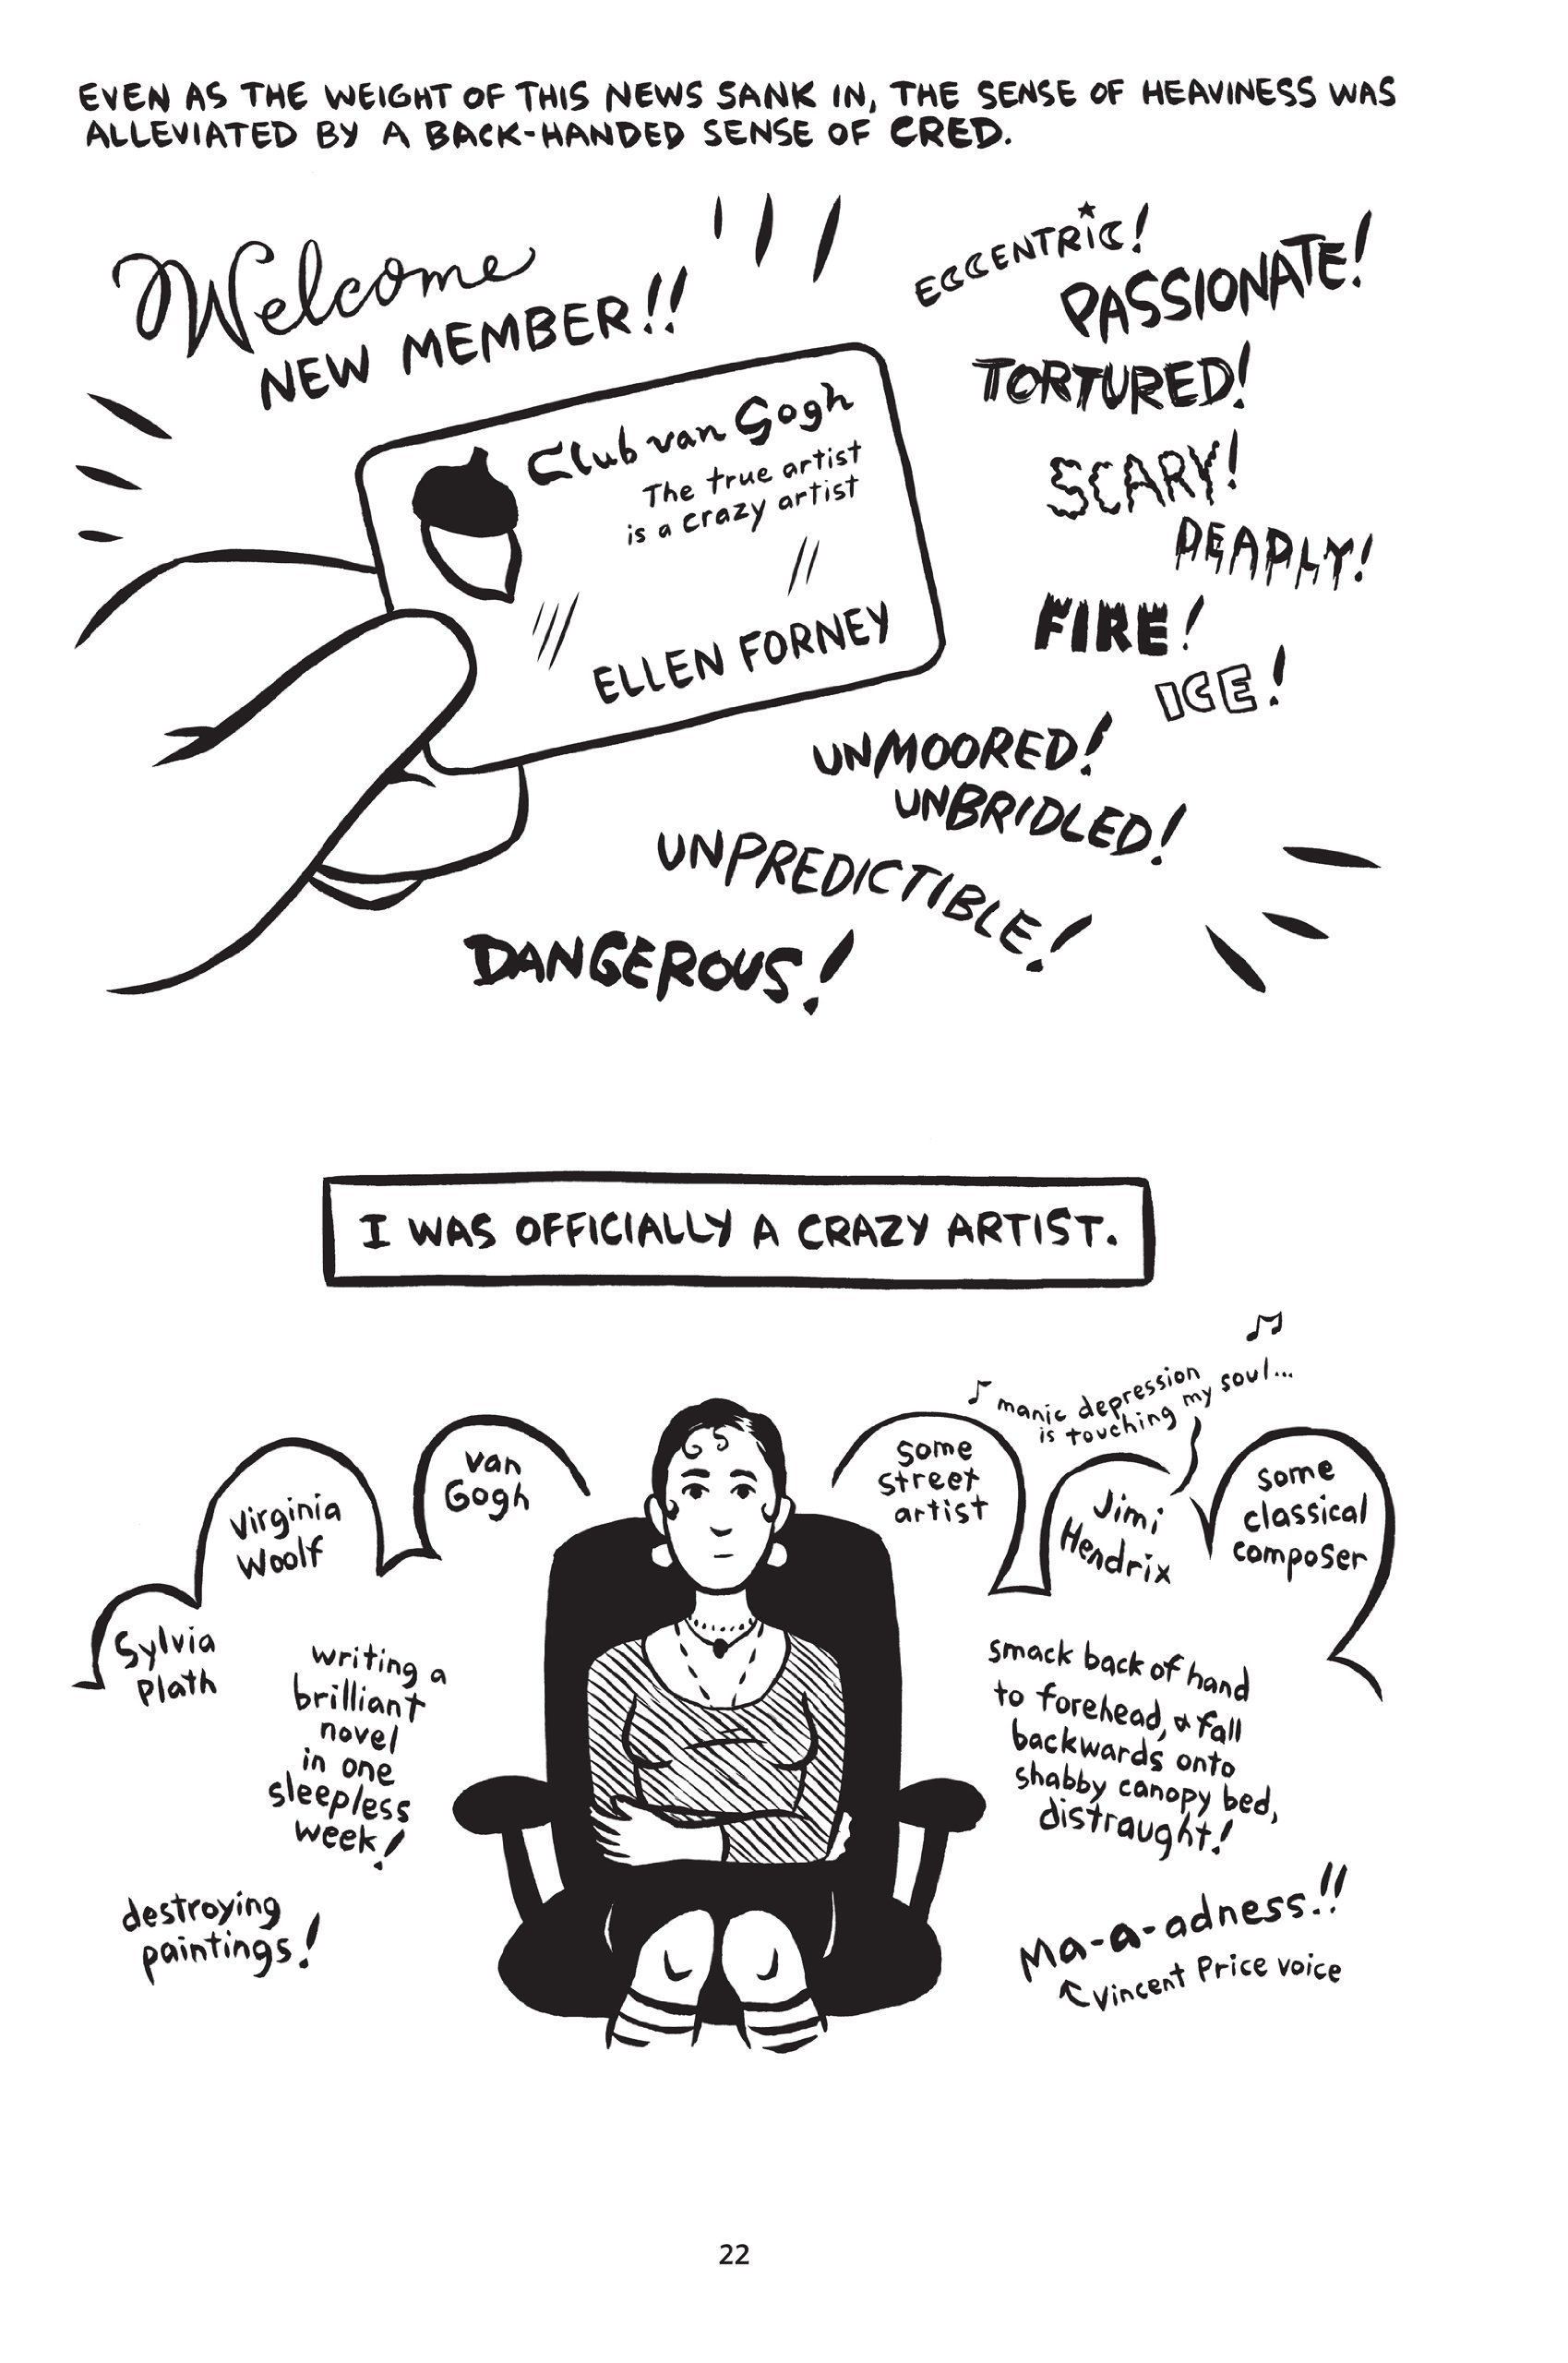 Image from Ellen Forney's graphic novel  Marbles: Mania, Depression, Michelangelo, and Me: A Graphic Memoir.